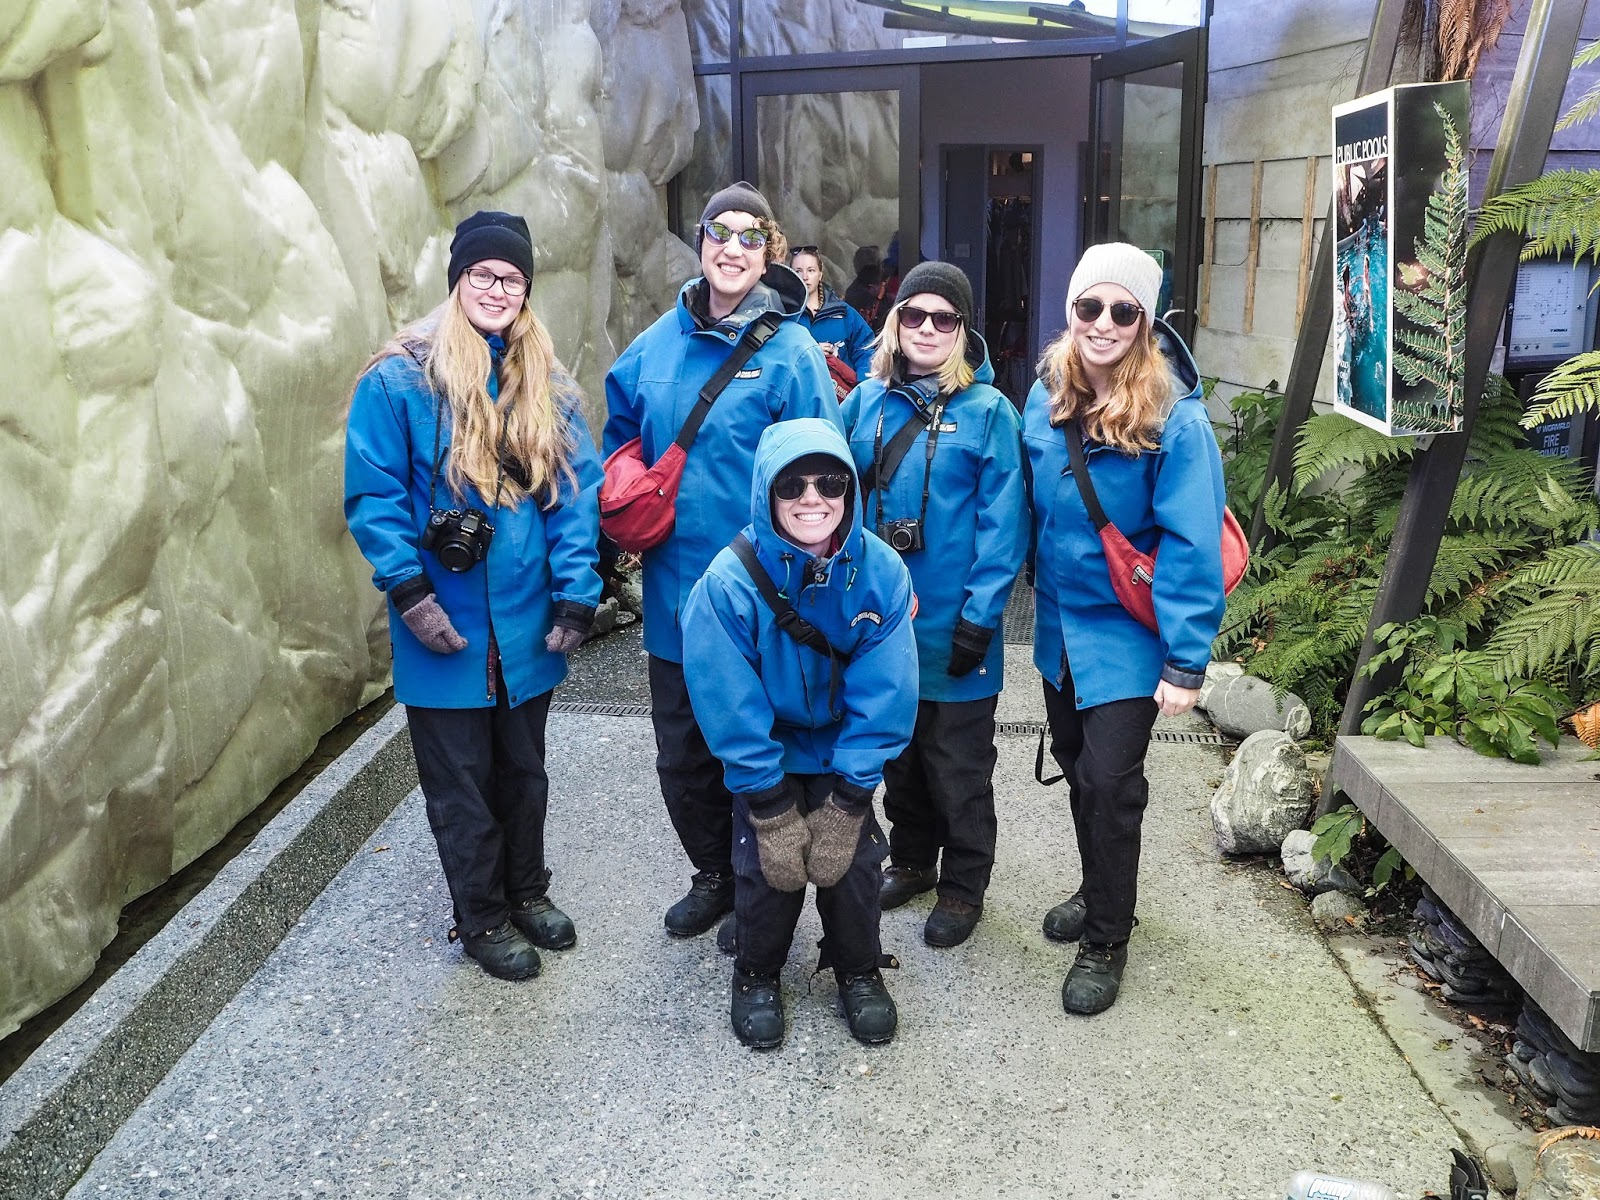 Tourists in snow proof clothing in preparation for hiking Franz Josef glacier